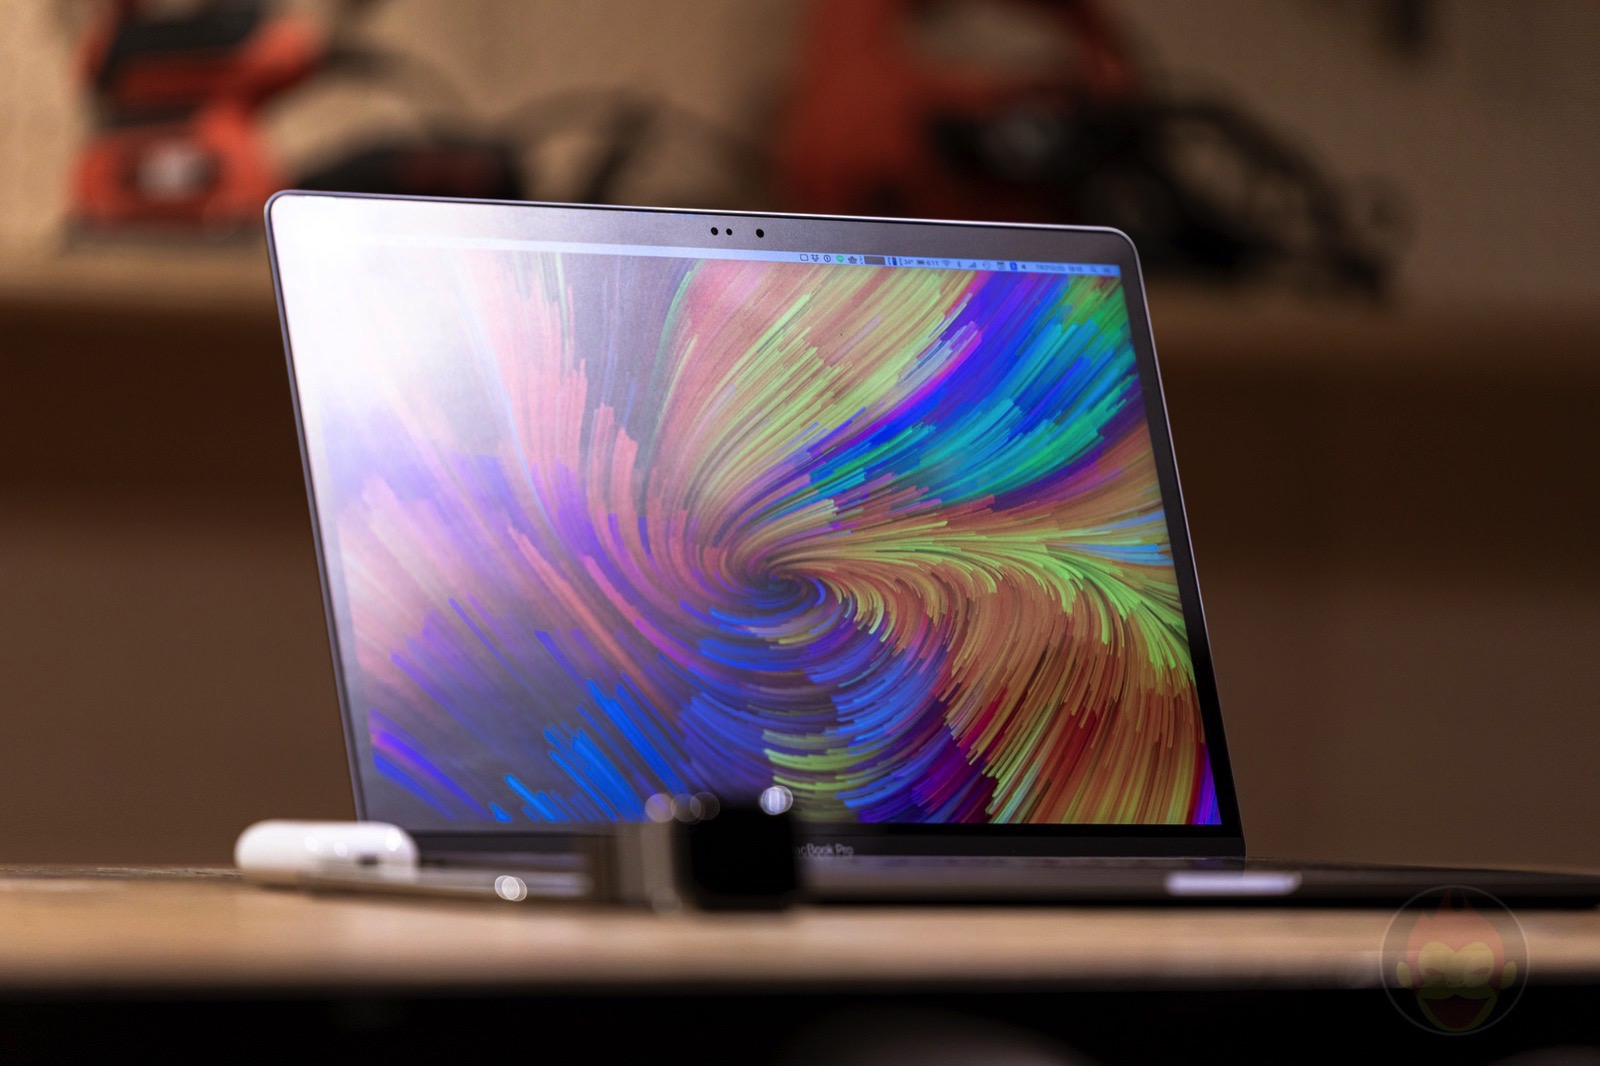 MacBook Pro(2019) 15inch Model 09